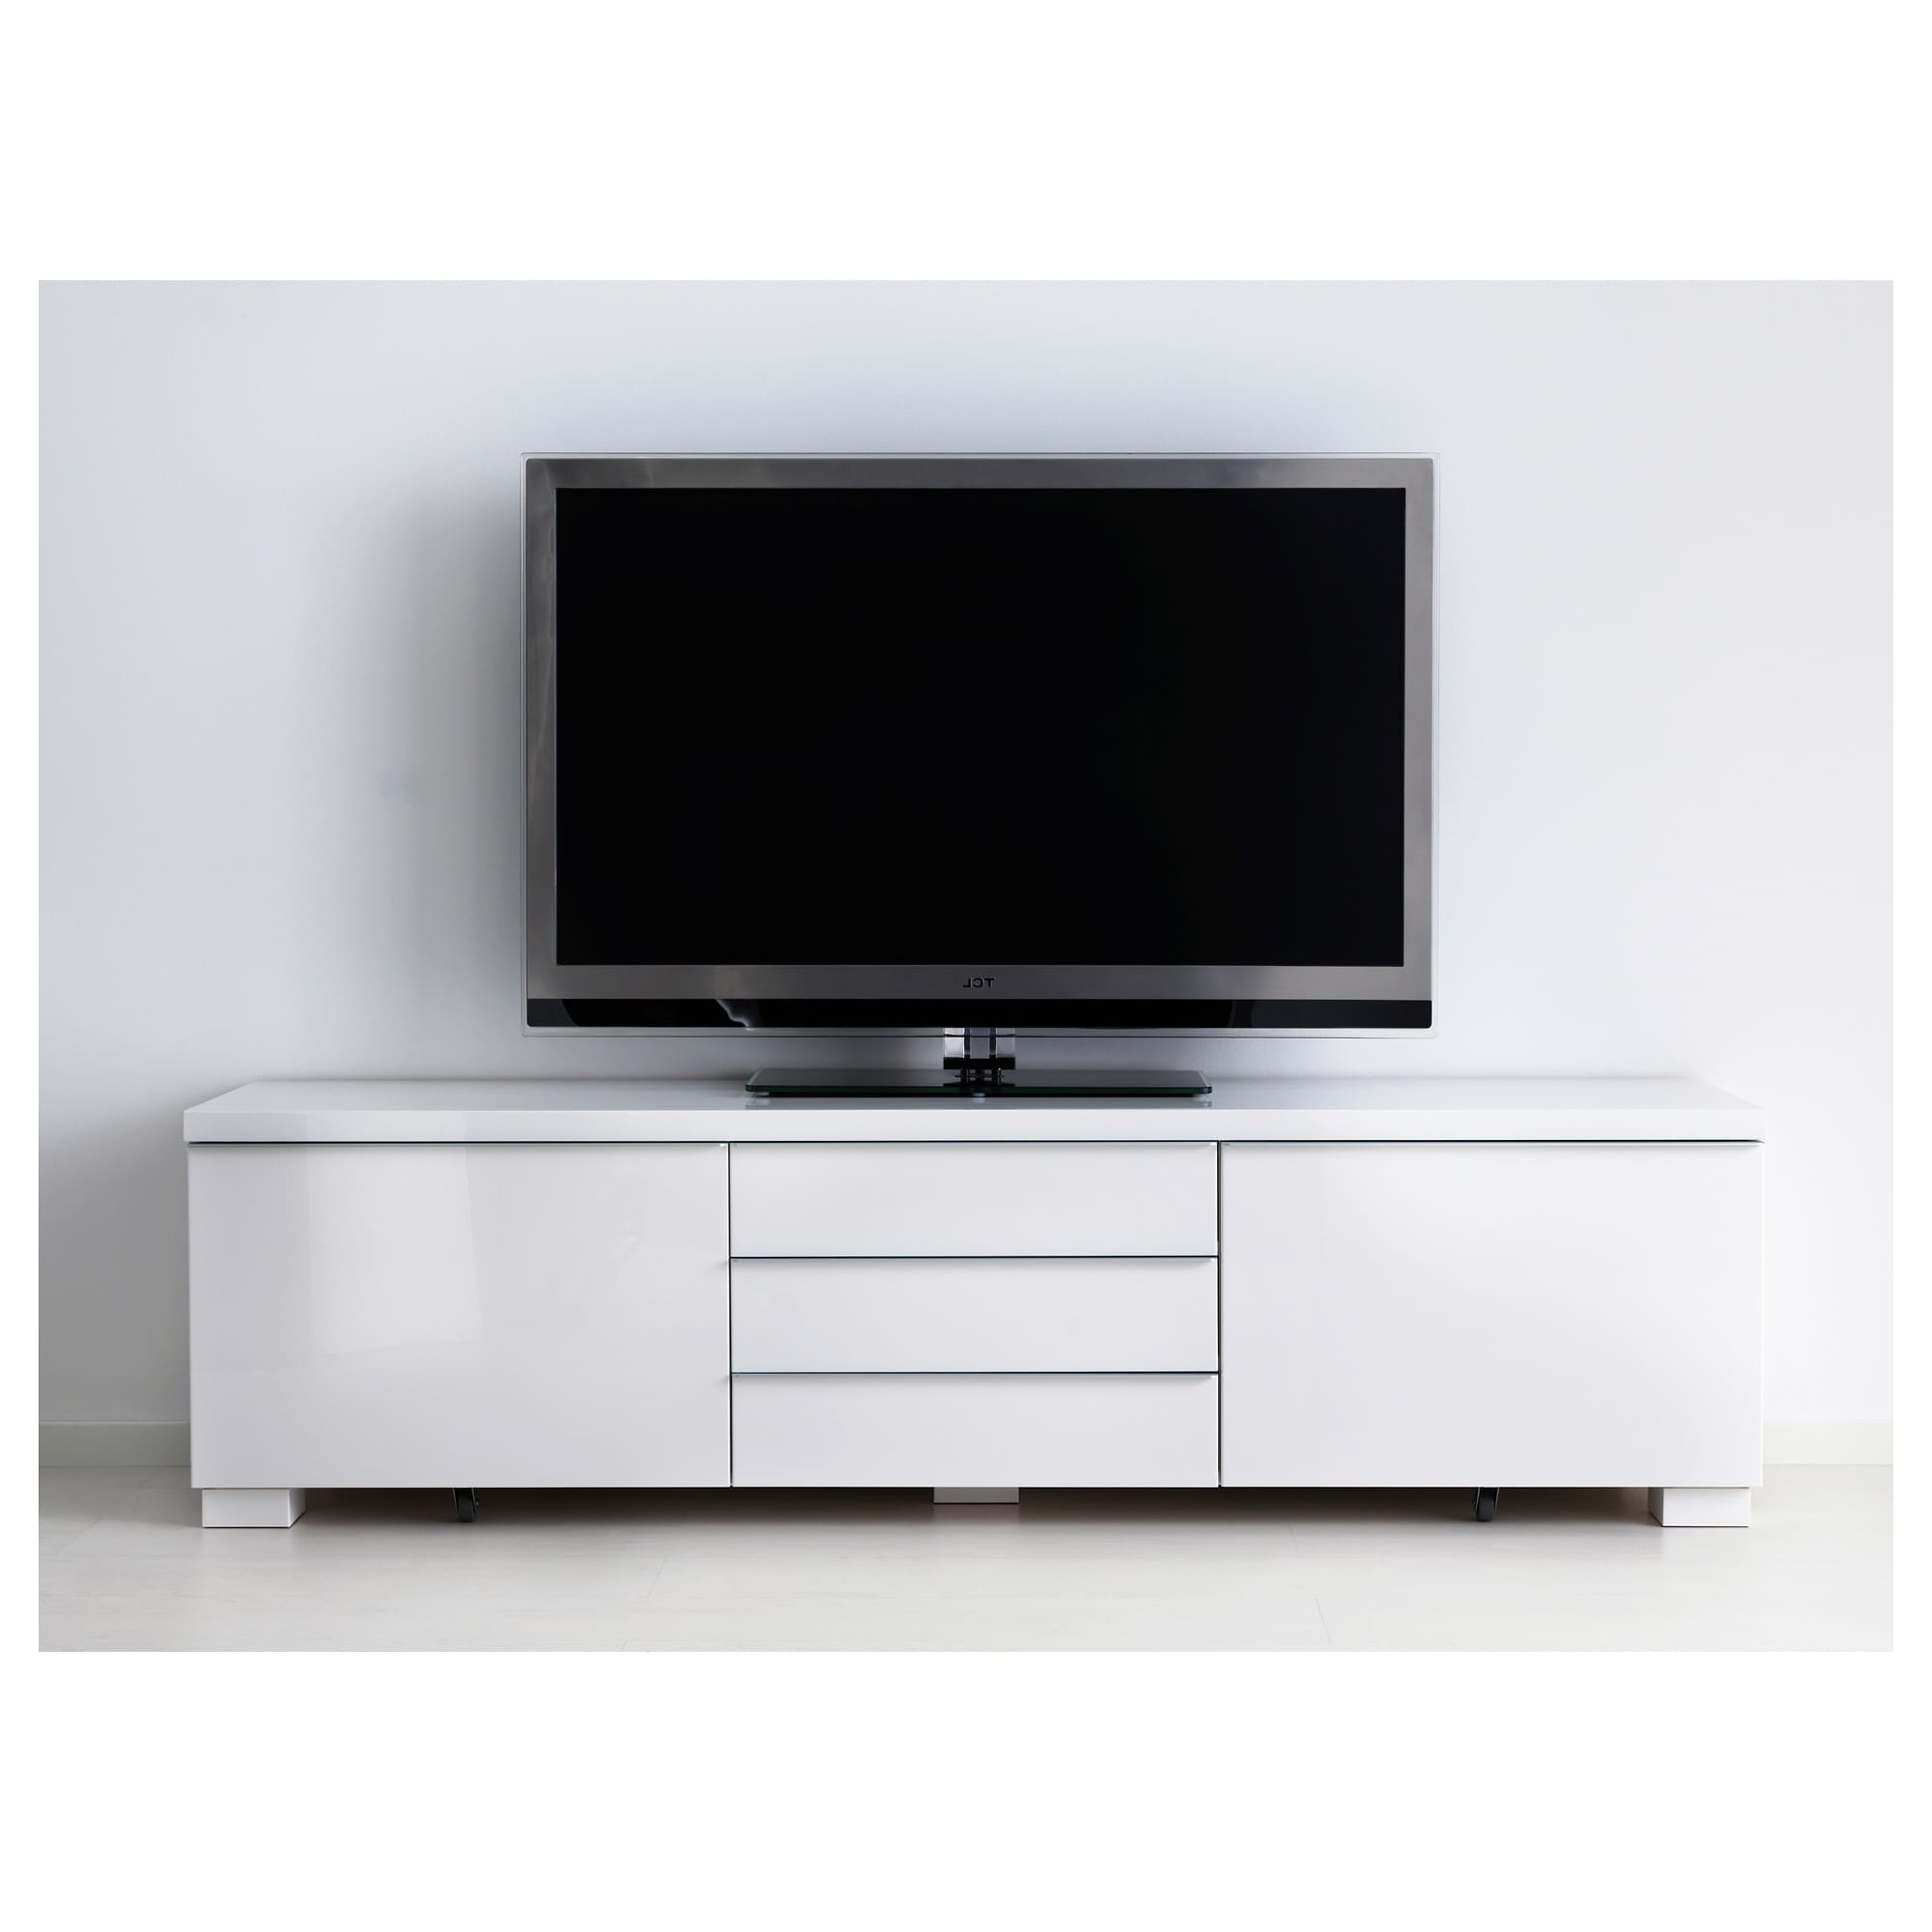 Fashionable Bestå Burs Tv Bench High Gloss White 180 X 41 X 49 Cm – Ikea For White Gloss Tv Cabinets (View 5 of 20)